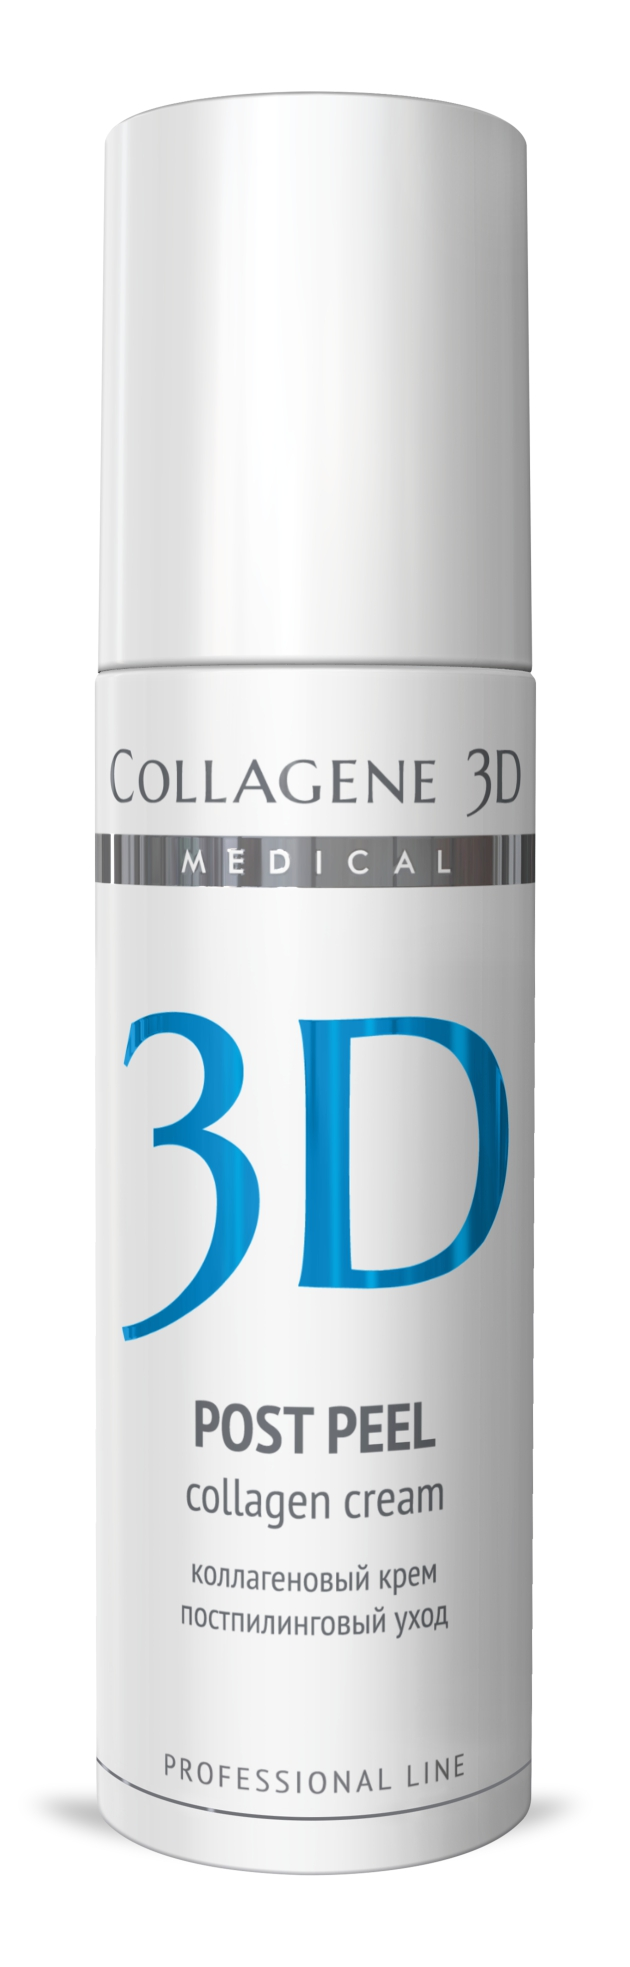 MEDICAL COLLAGENE 3D Крем с коллагеном, УФ-фильтром (SPF7) и нейтразеном для лица Post Peel 150мл проф. гель medical collagene 3d easy peel glicolic peeling 5